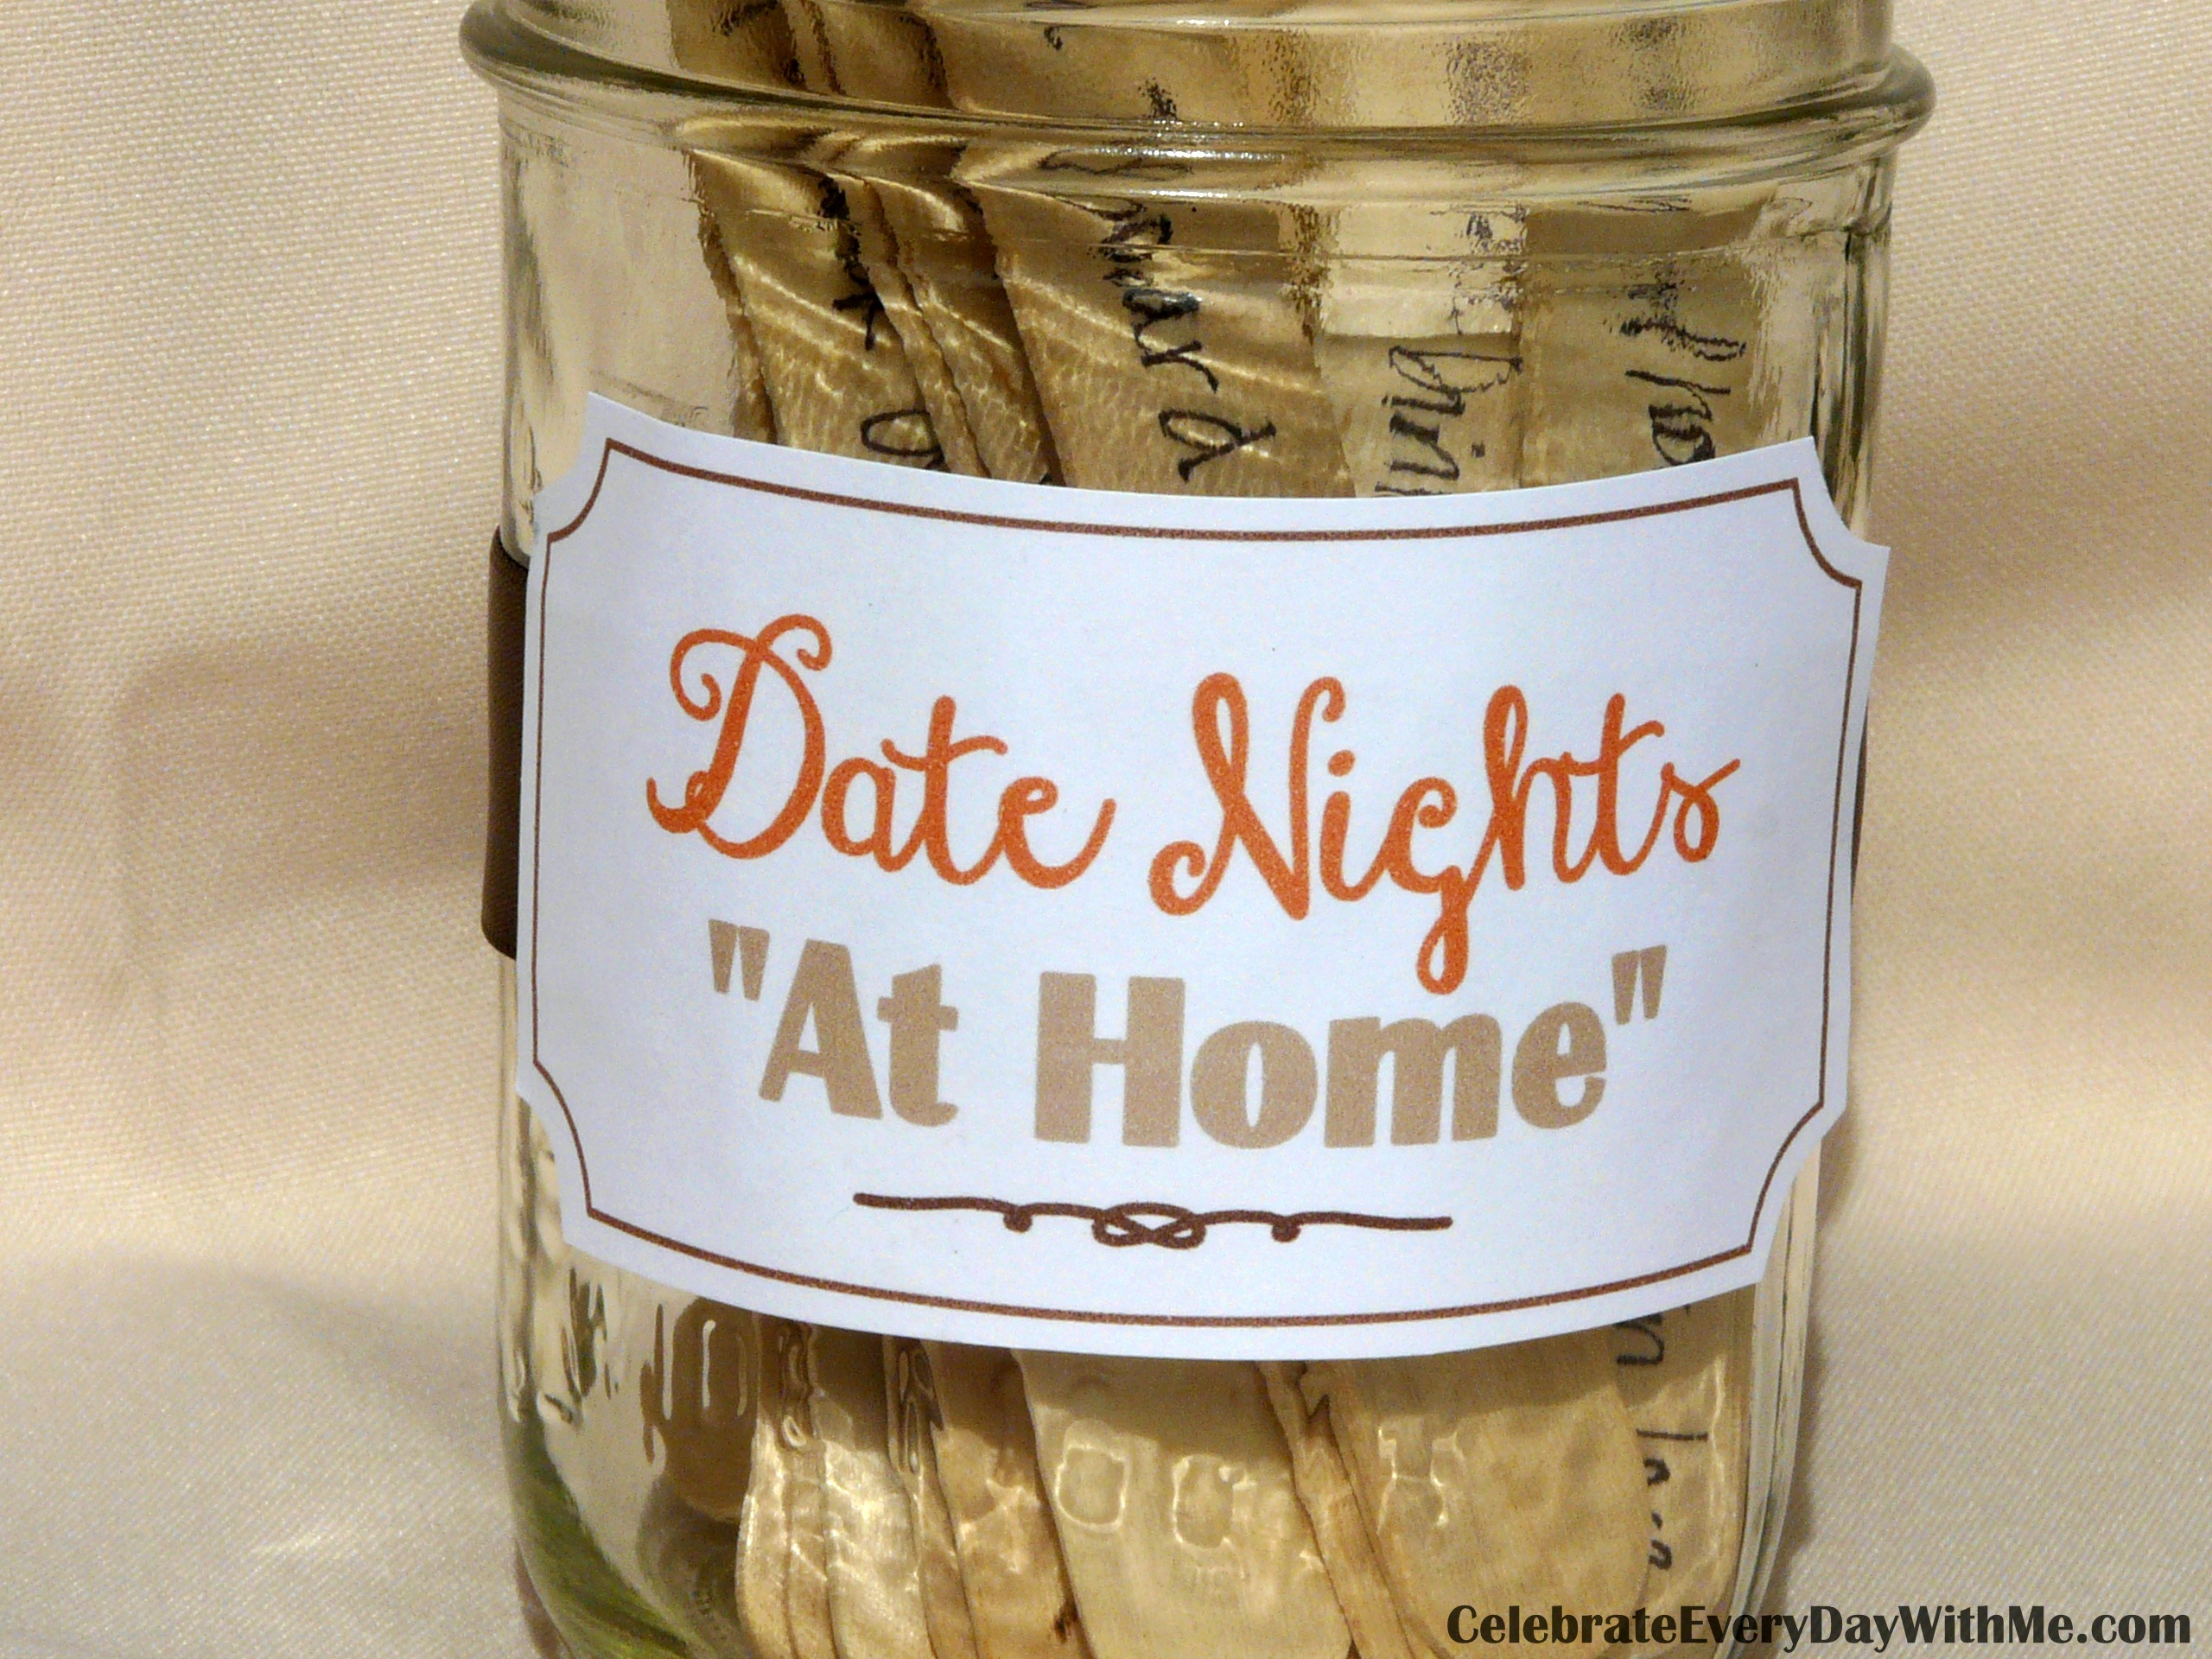 "30 ideas for date nights ""at home"" - celebrate every day with me"